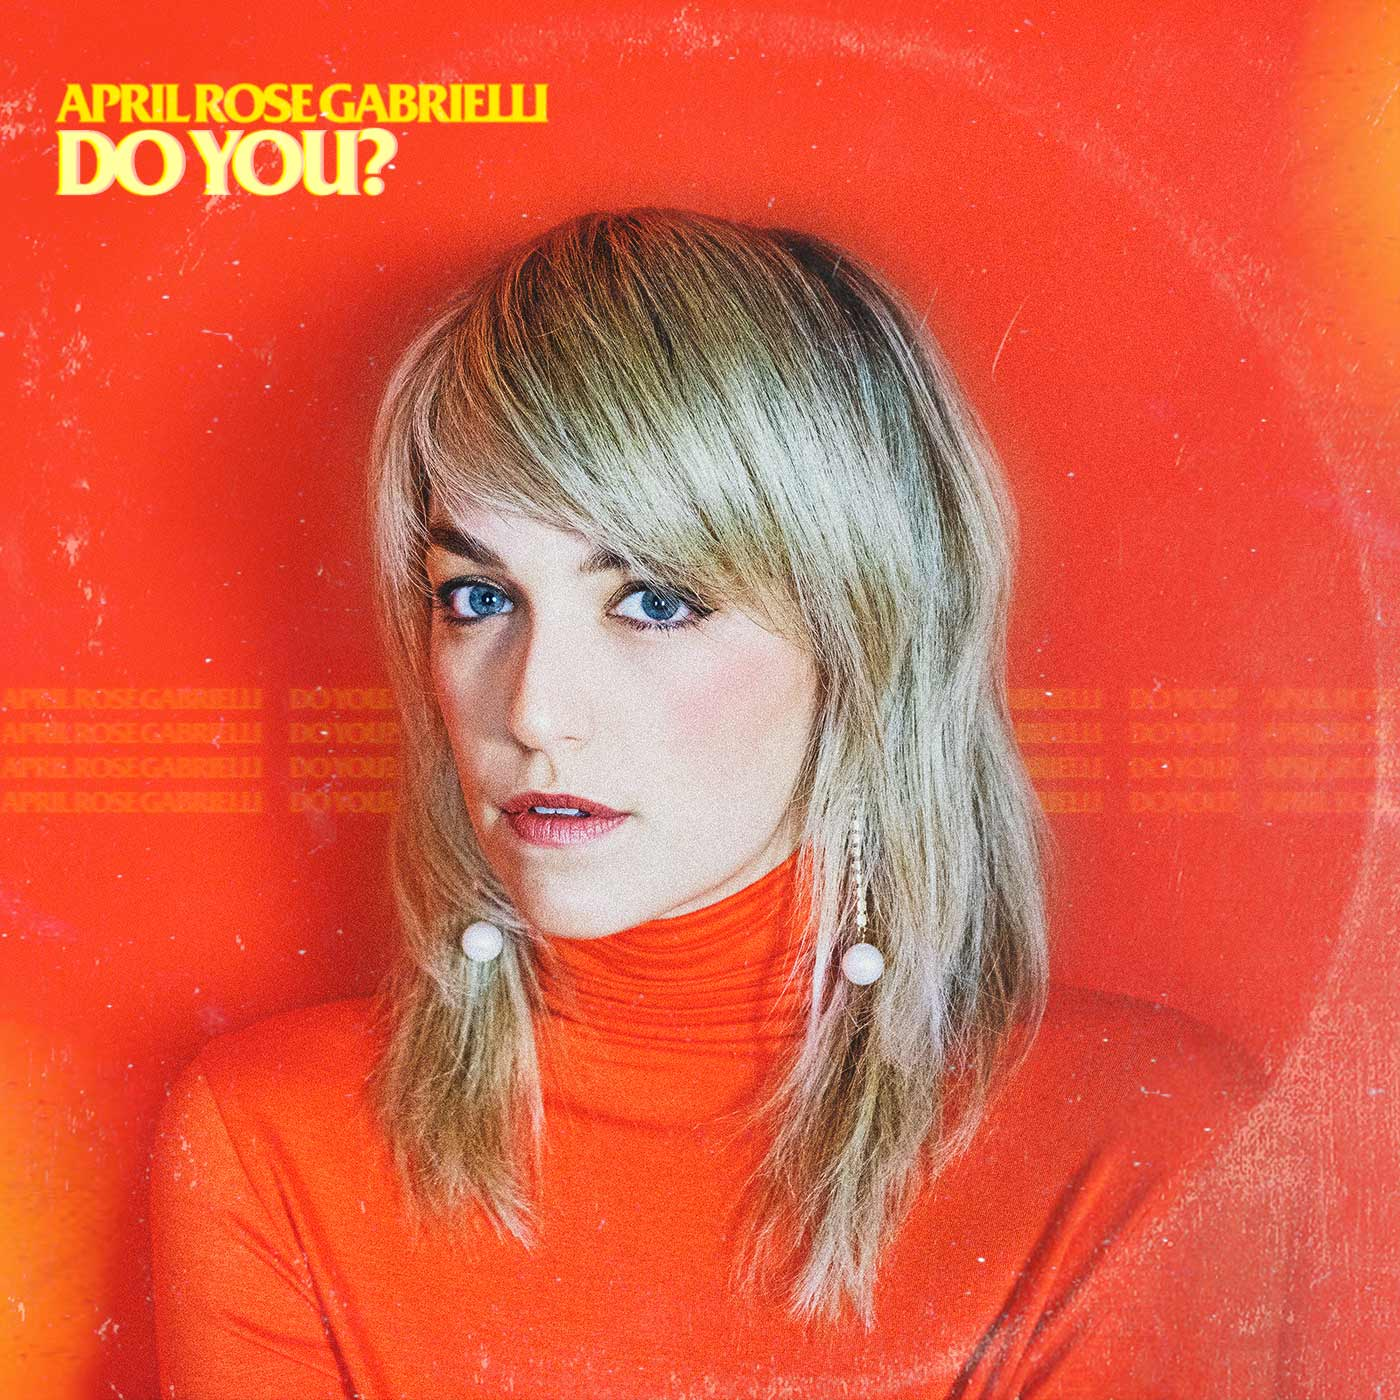 """April Rose Gabrielli To Release Highly Anticipated New Single """"Do You?"""" July 20th, 2021 Via Soho Records & AWAL/Sony"""